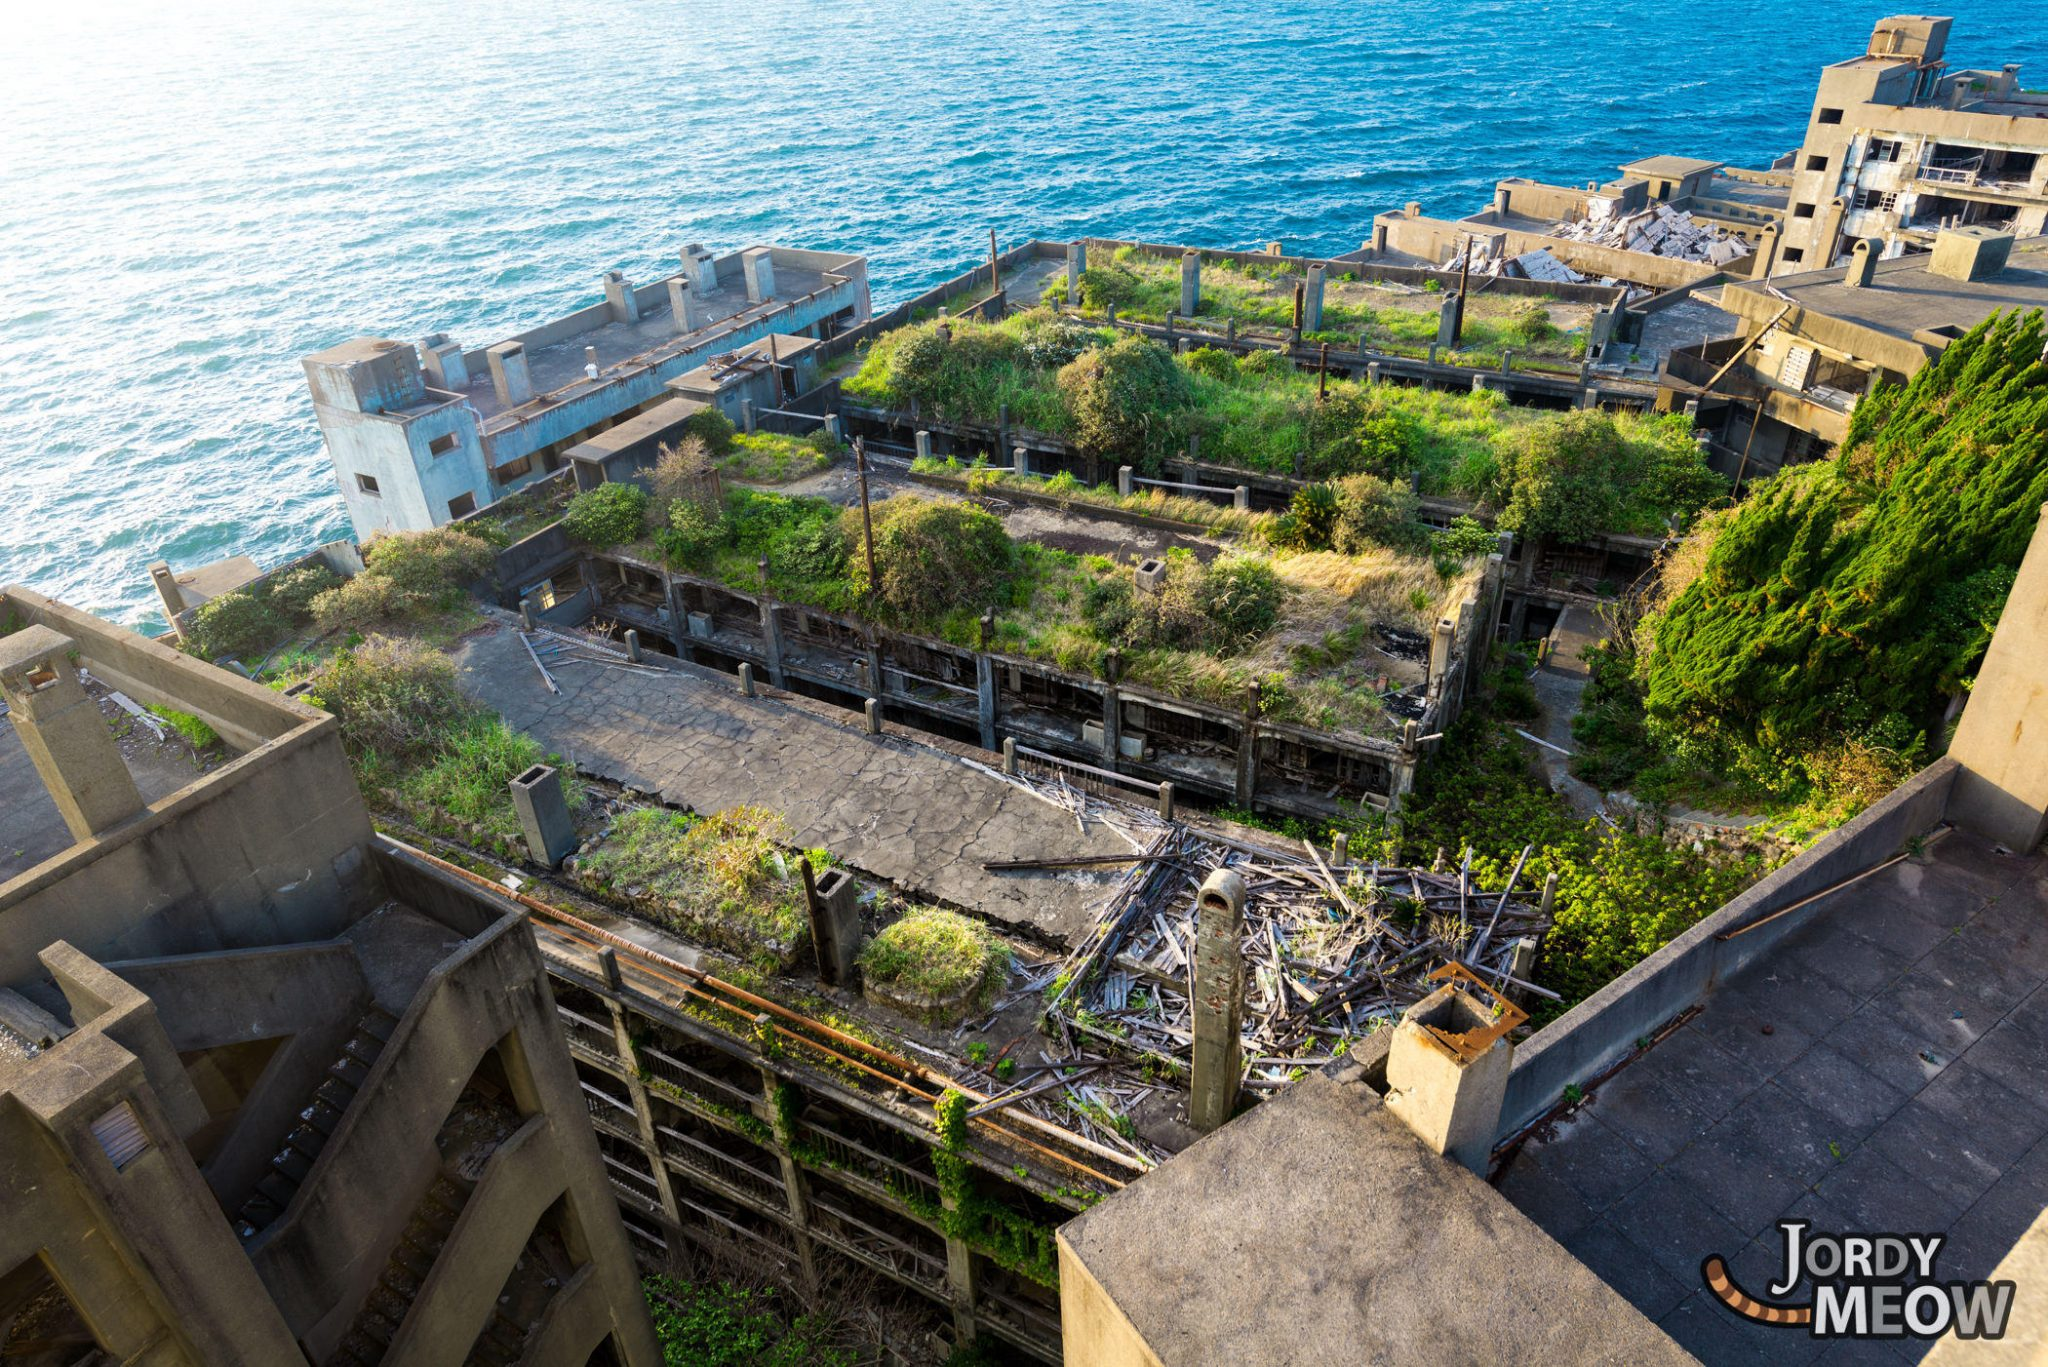 Gunkanjima: Apartments